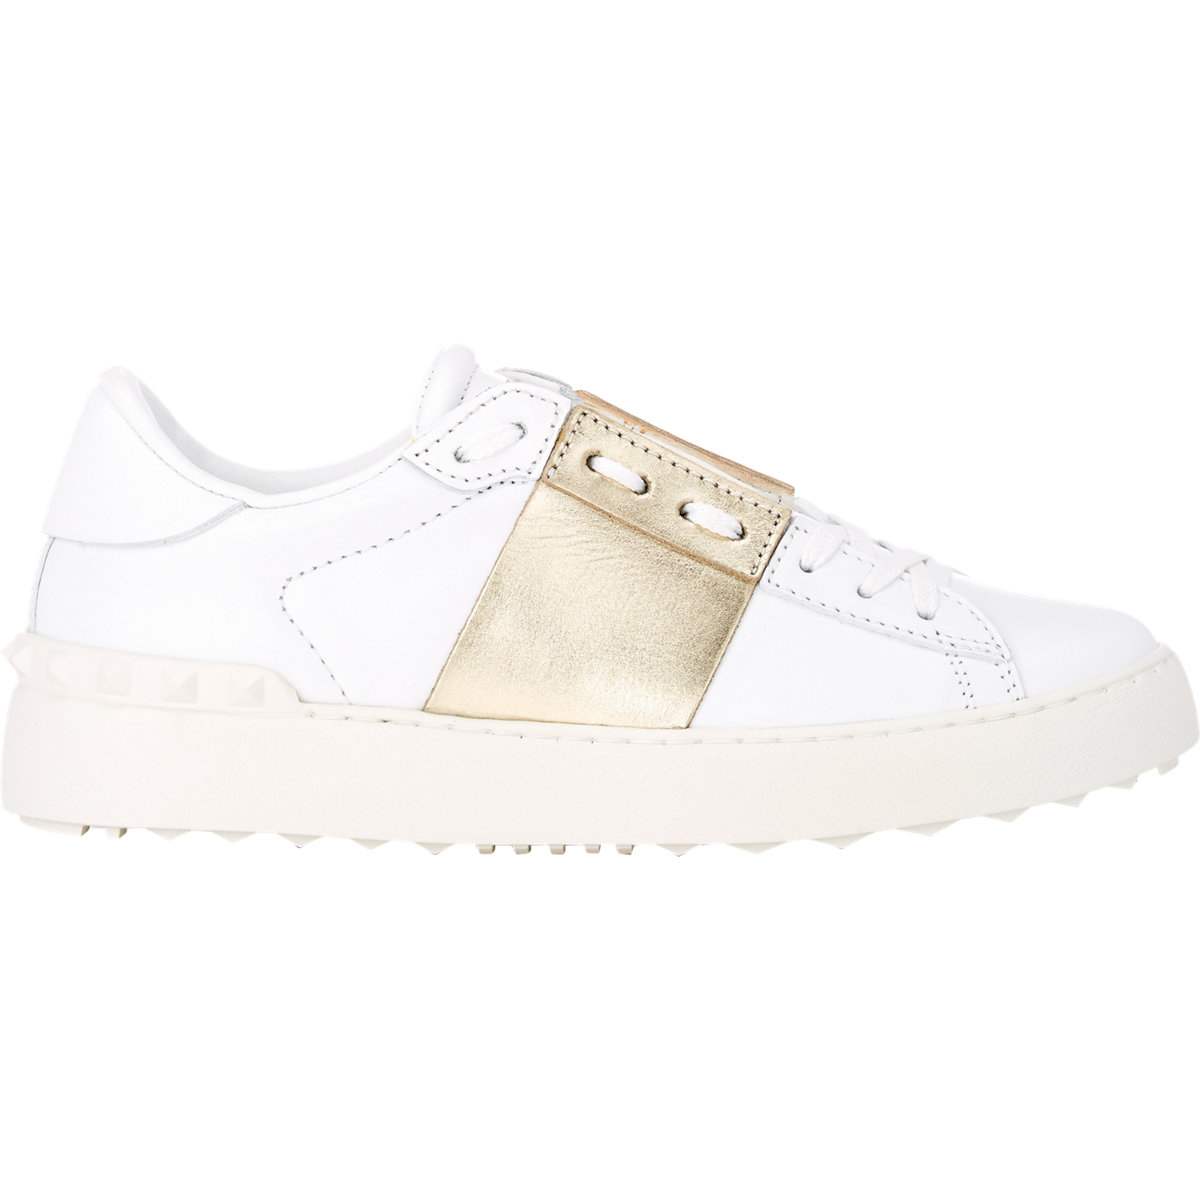 Open Sneakers in White and Waterose Calf Valentino Great Deals Sale Online IKjhUkS